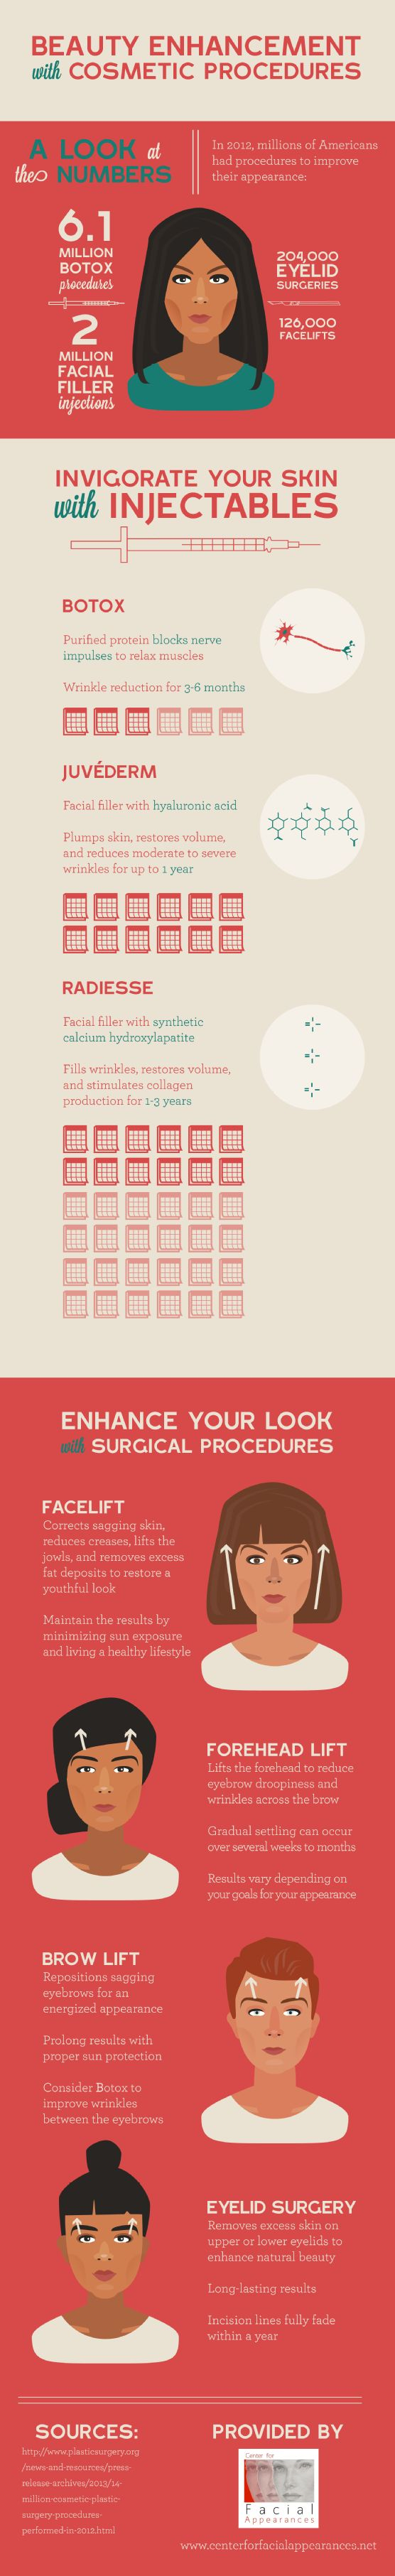 A not so natural skin help. Did you know that a forehead lift reduces eyebrow droopiness and wrinkles that develop across the brow? Discover other facts about cosmetic procedures that restore a youthful appearance by clicking over to this Utah cosmetic surgeon infographic.